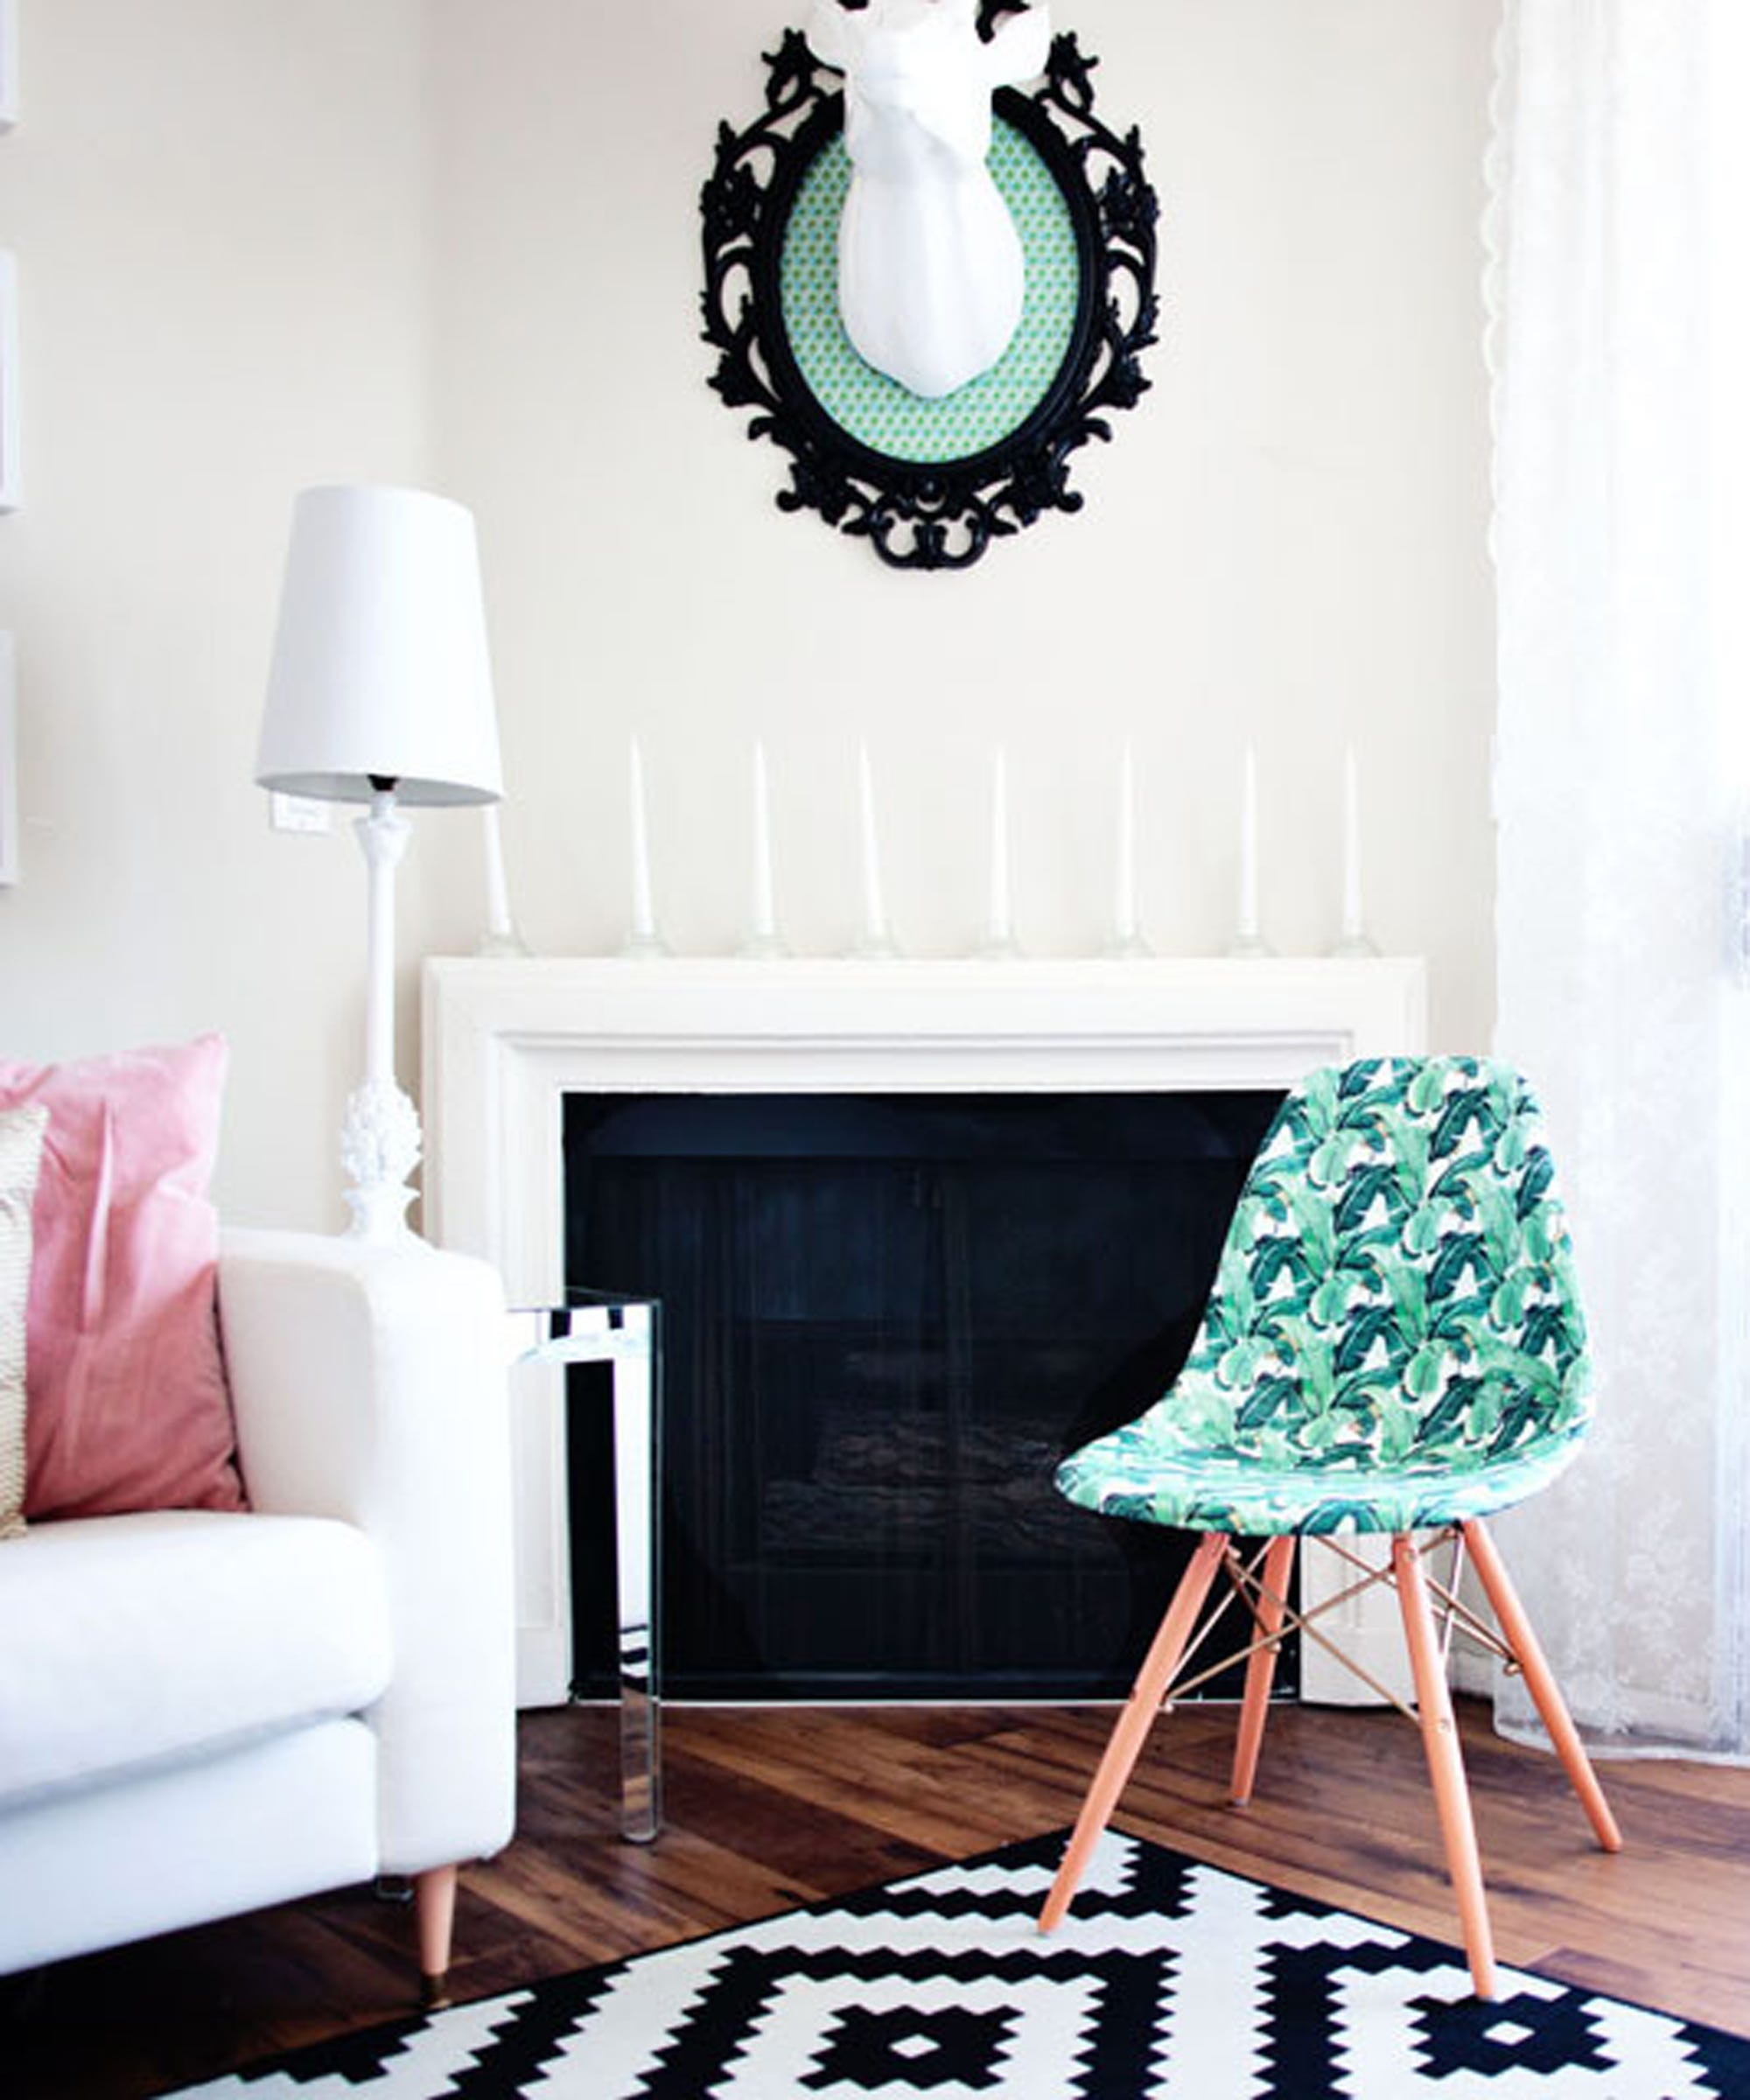 10 Easy Home Decor Hacks ANYONE Can Do